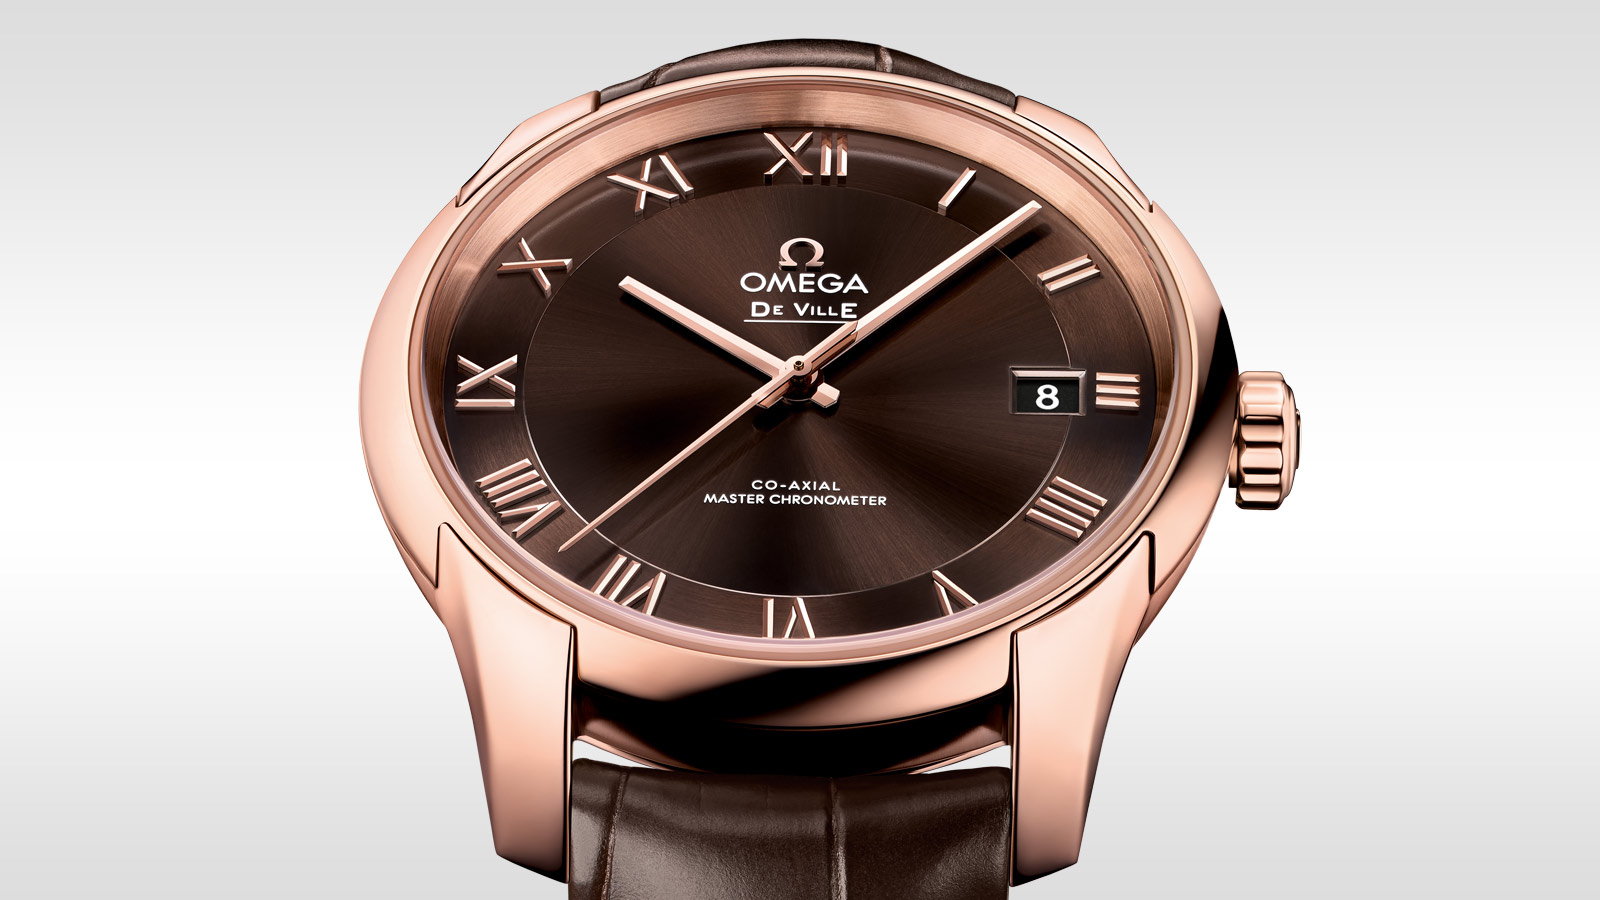 De Ville アワービジョン Hour Vision Omega Co‑Axial Master Chronometer 41 mm - 433.53.41.21.13.001 - ビュー 1